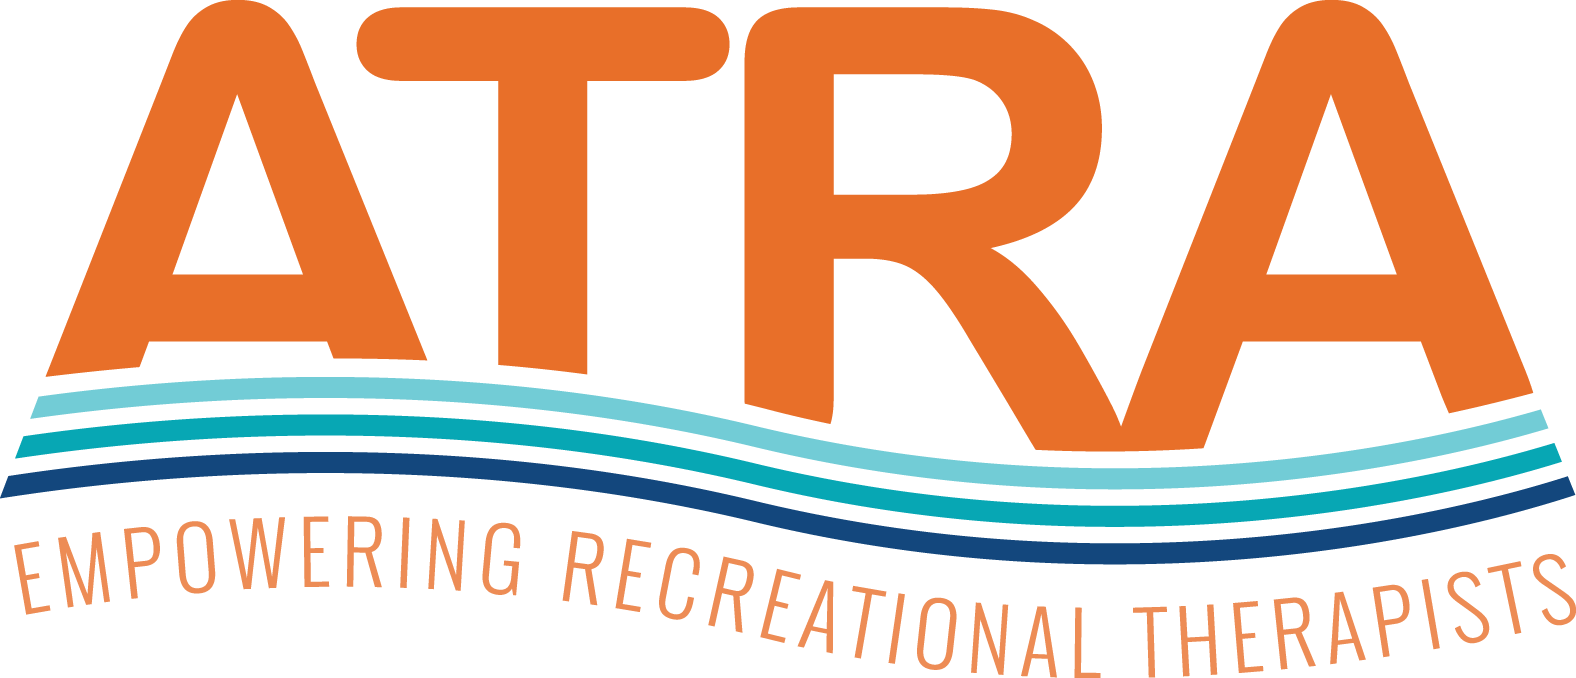 Recreation Leader Job Description